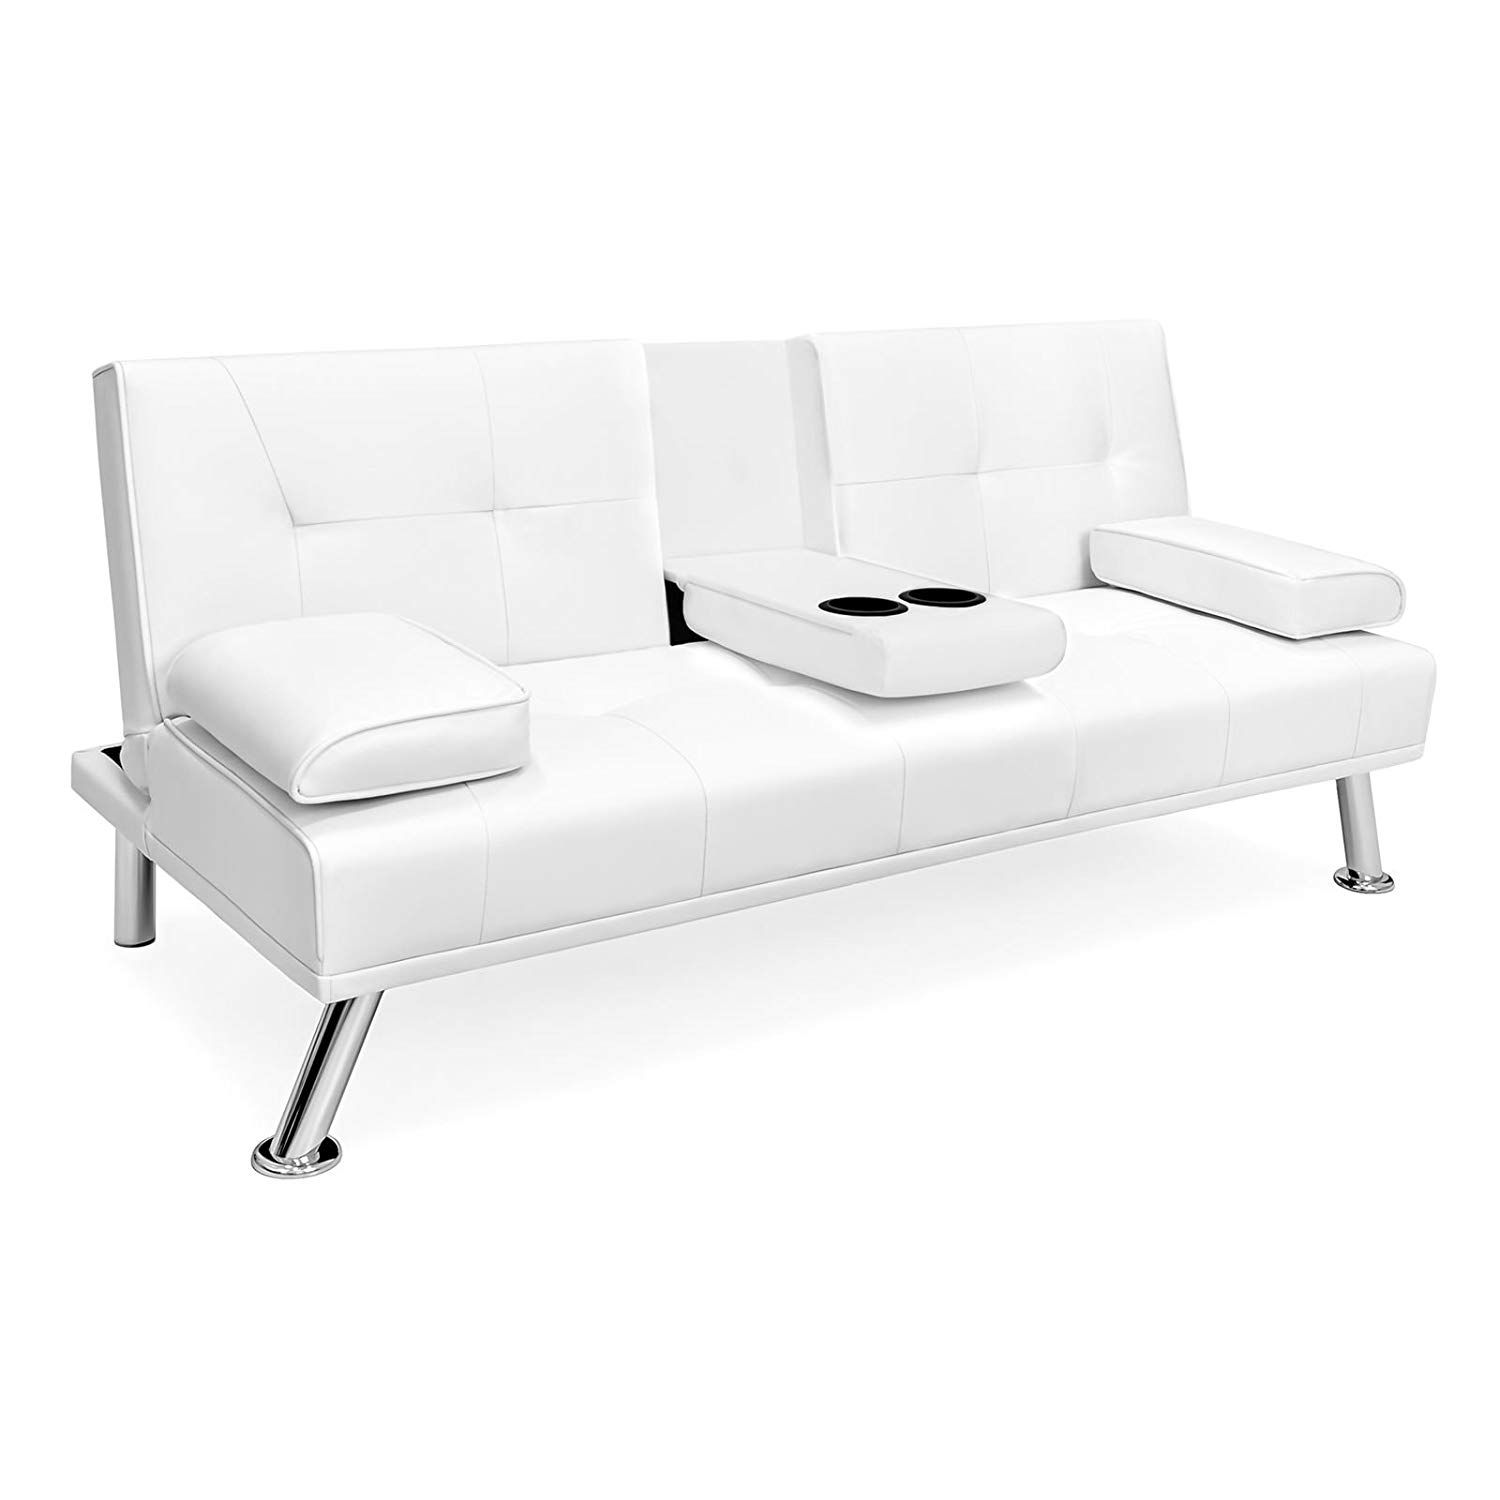 White Faux Leather Entertainment Convertible Futon Sofa Bed Cup